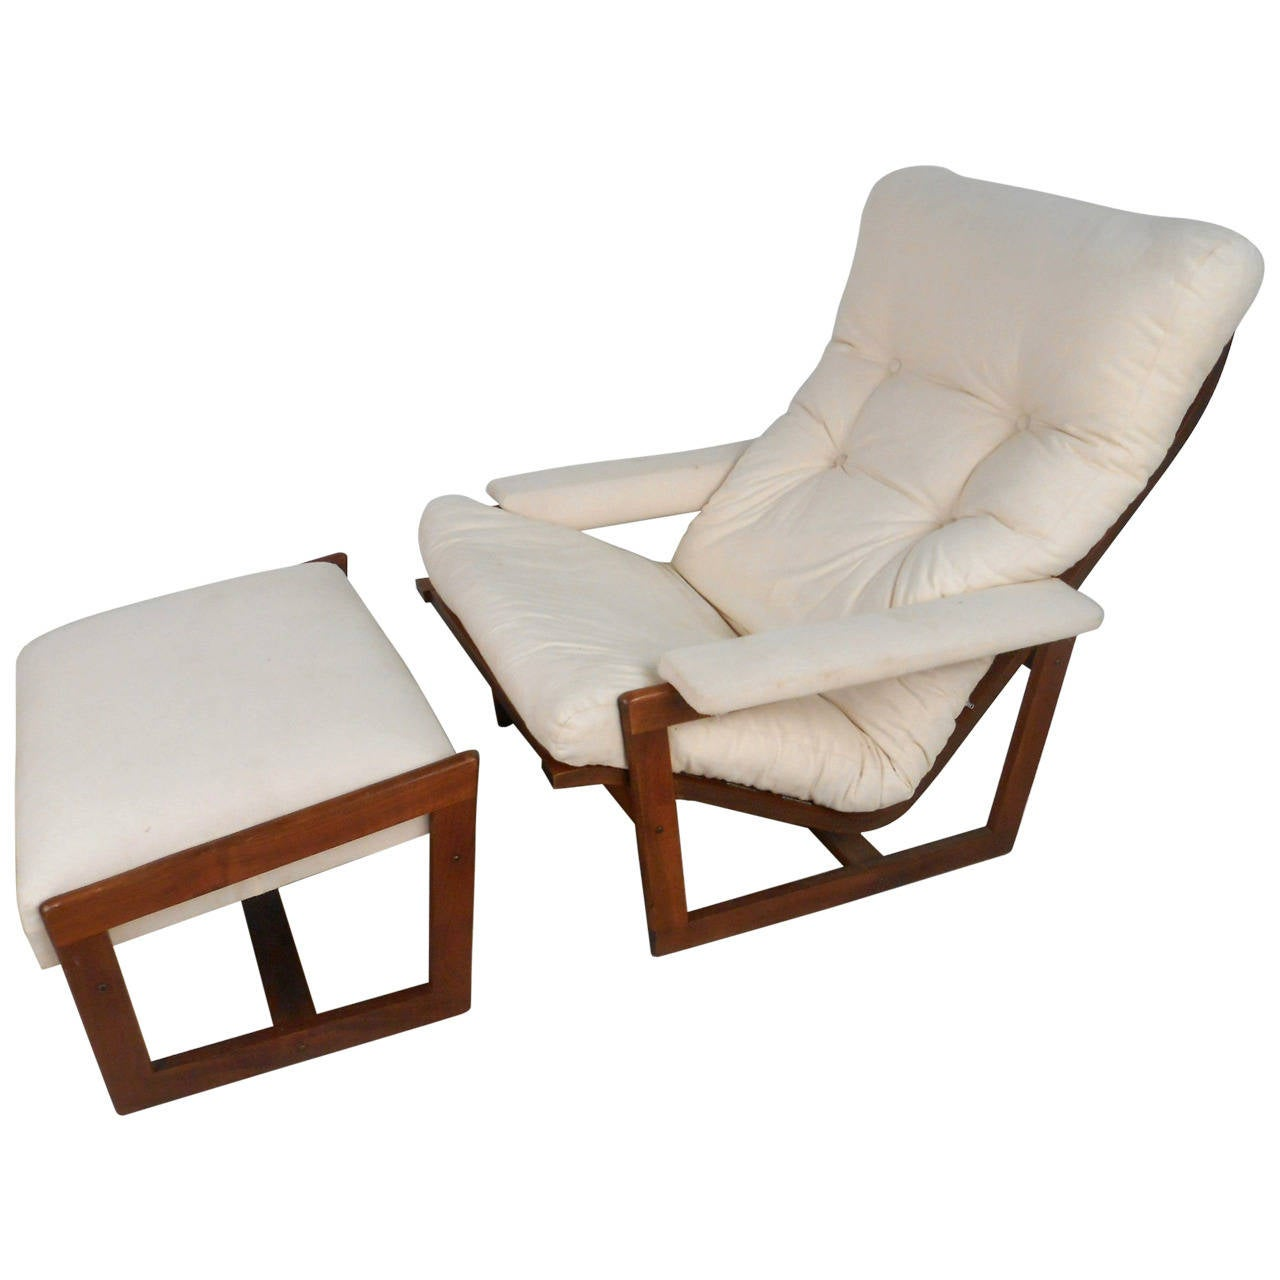 Modern Lounge Chairs Unique Mid Century Modern Teak Frame Lounge Chair With